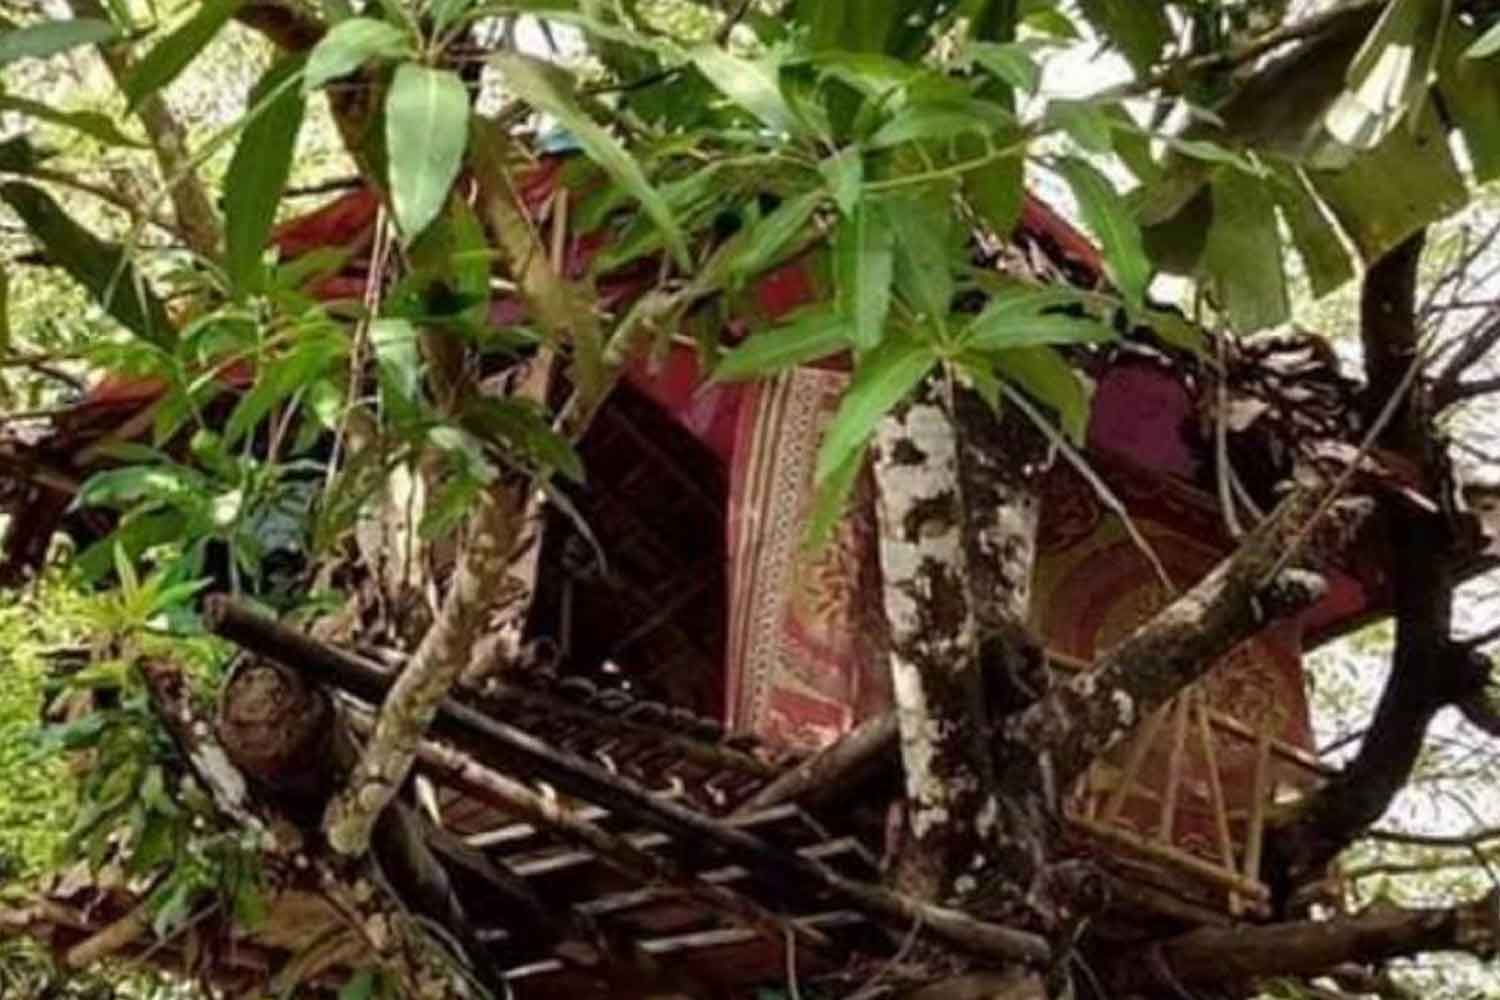 The tree house where a Myanmar man who returned from working in Thailand is living, after his home village in Hpa-an province of Karen State refused to allow him in unless he first spent 14 days in isolation, to prove he is not bringing back Covid-19 disease. (Photo: Assawin Pinitwong)